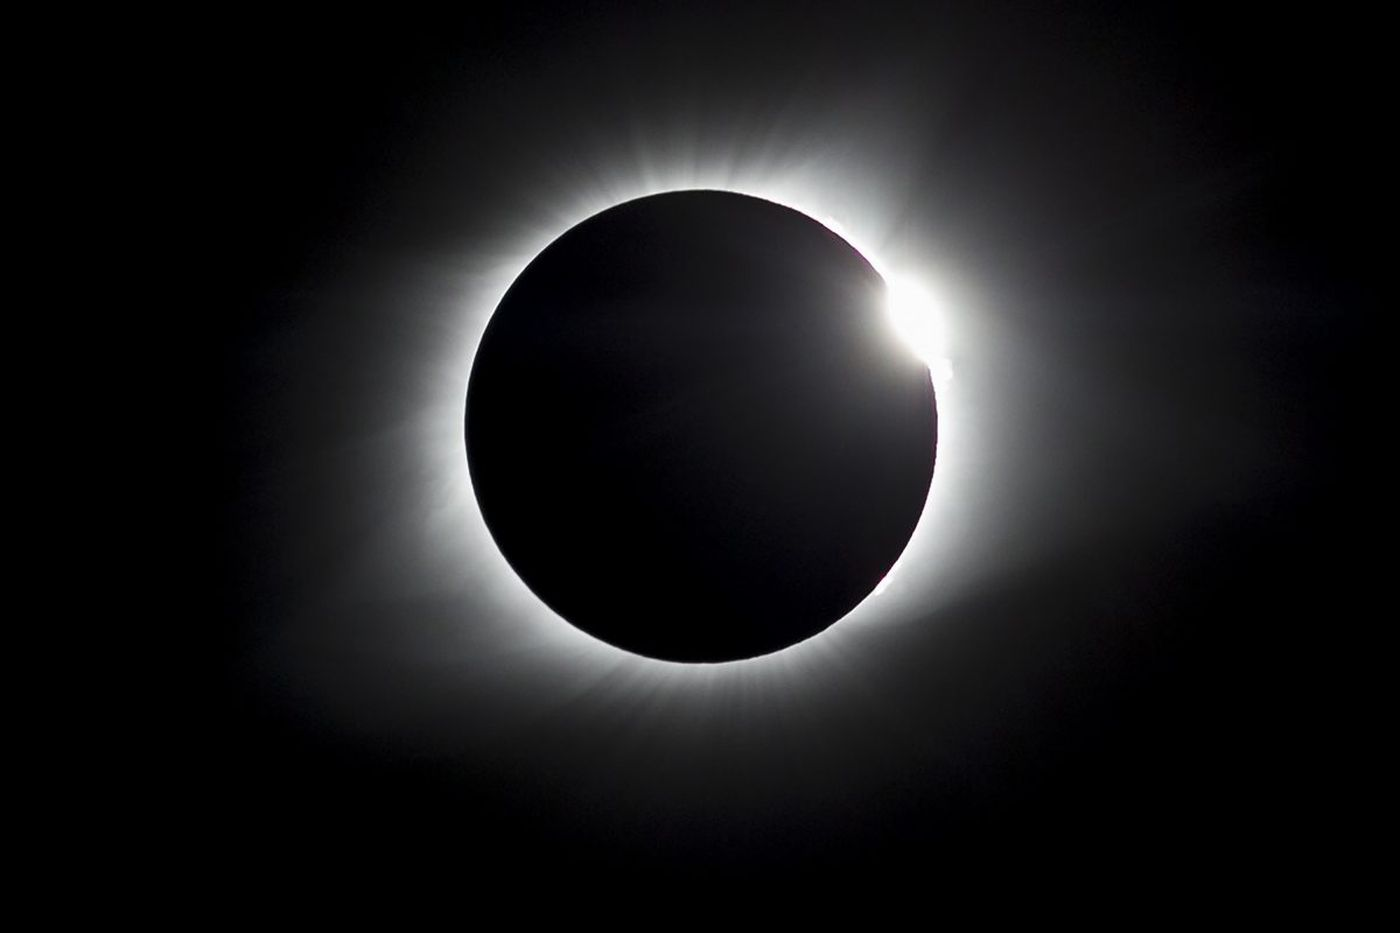 The eclipse distracted multitudes from their desks, and power demand plunged